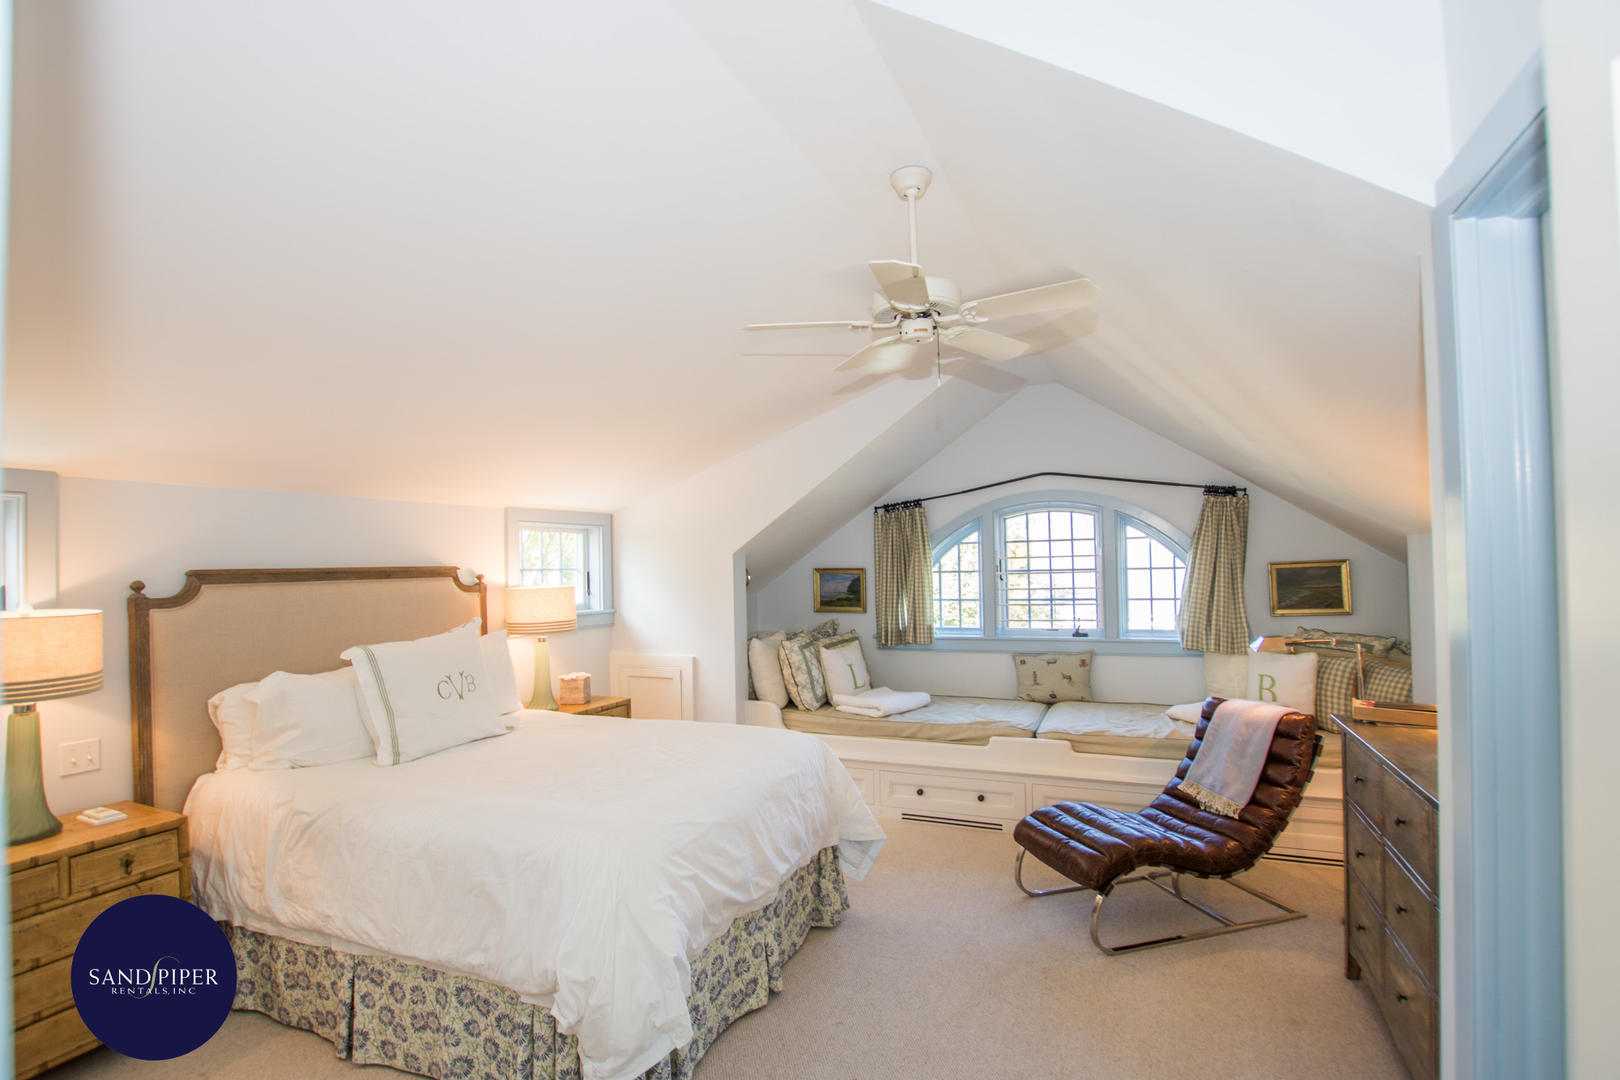 Bedroom 4 with Queen Bed, Ensuite Bath with Tub Shower Combination, Third Floor